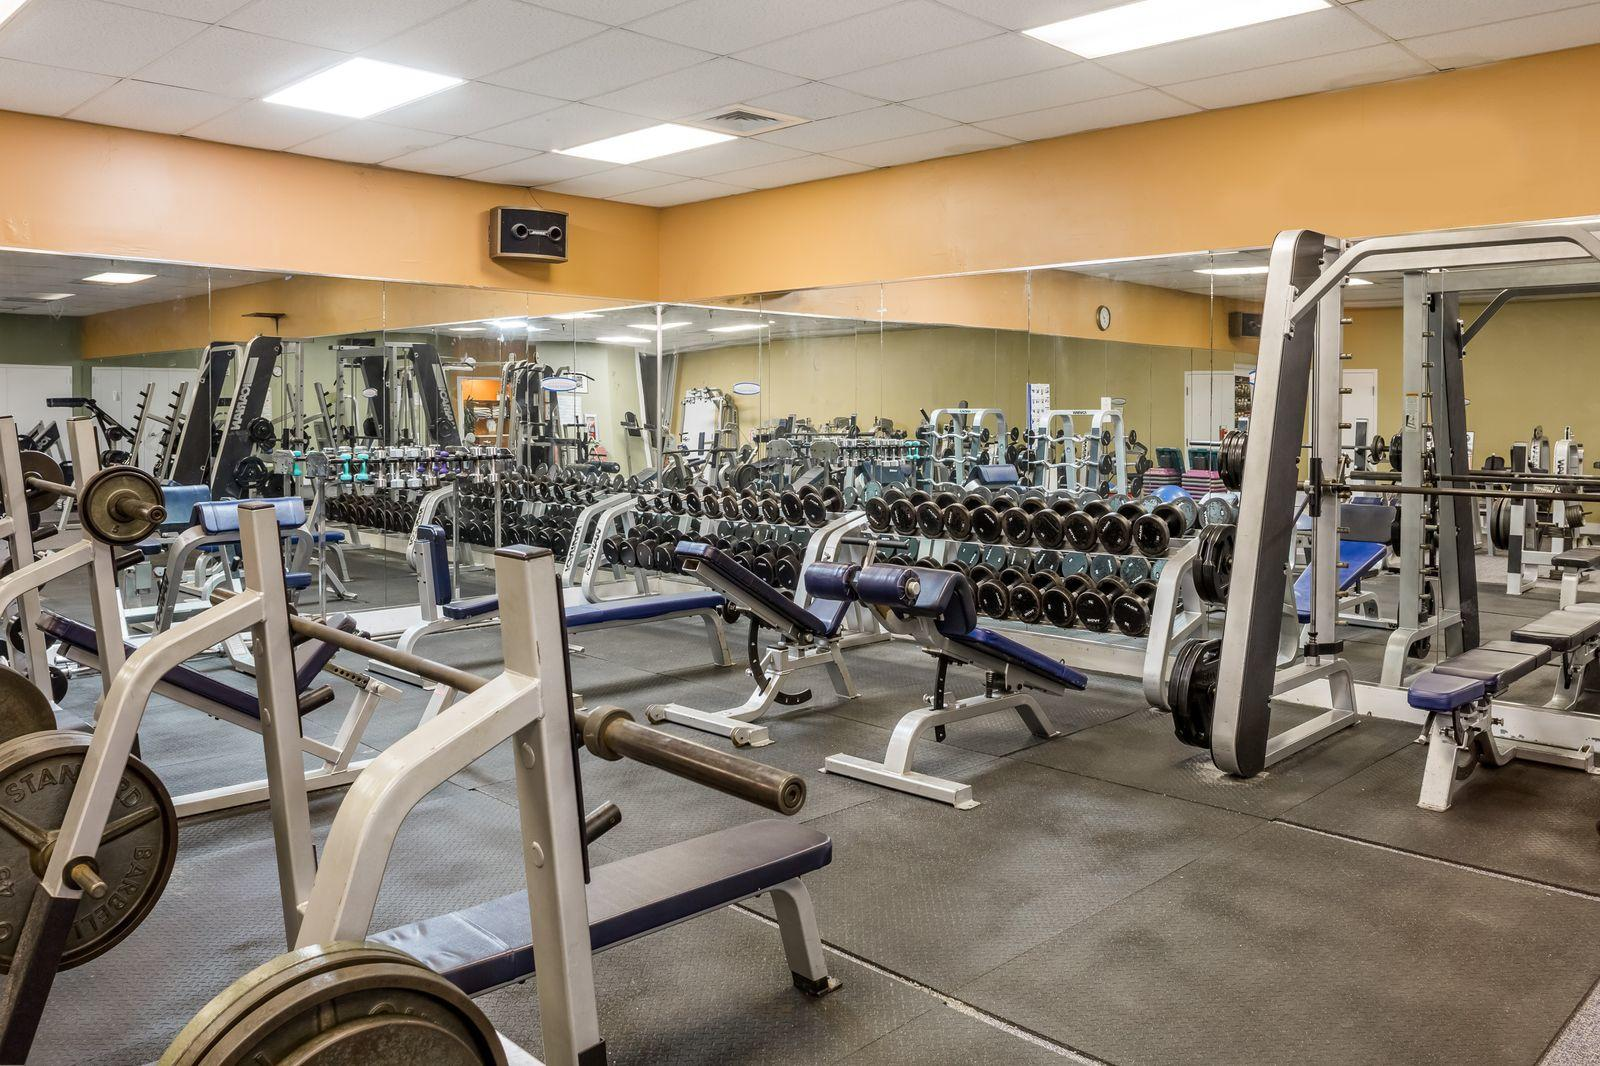 Fitness room with multiple workout stations.